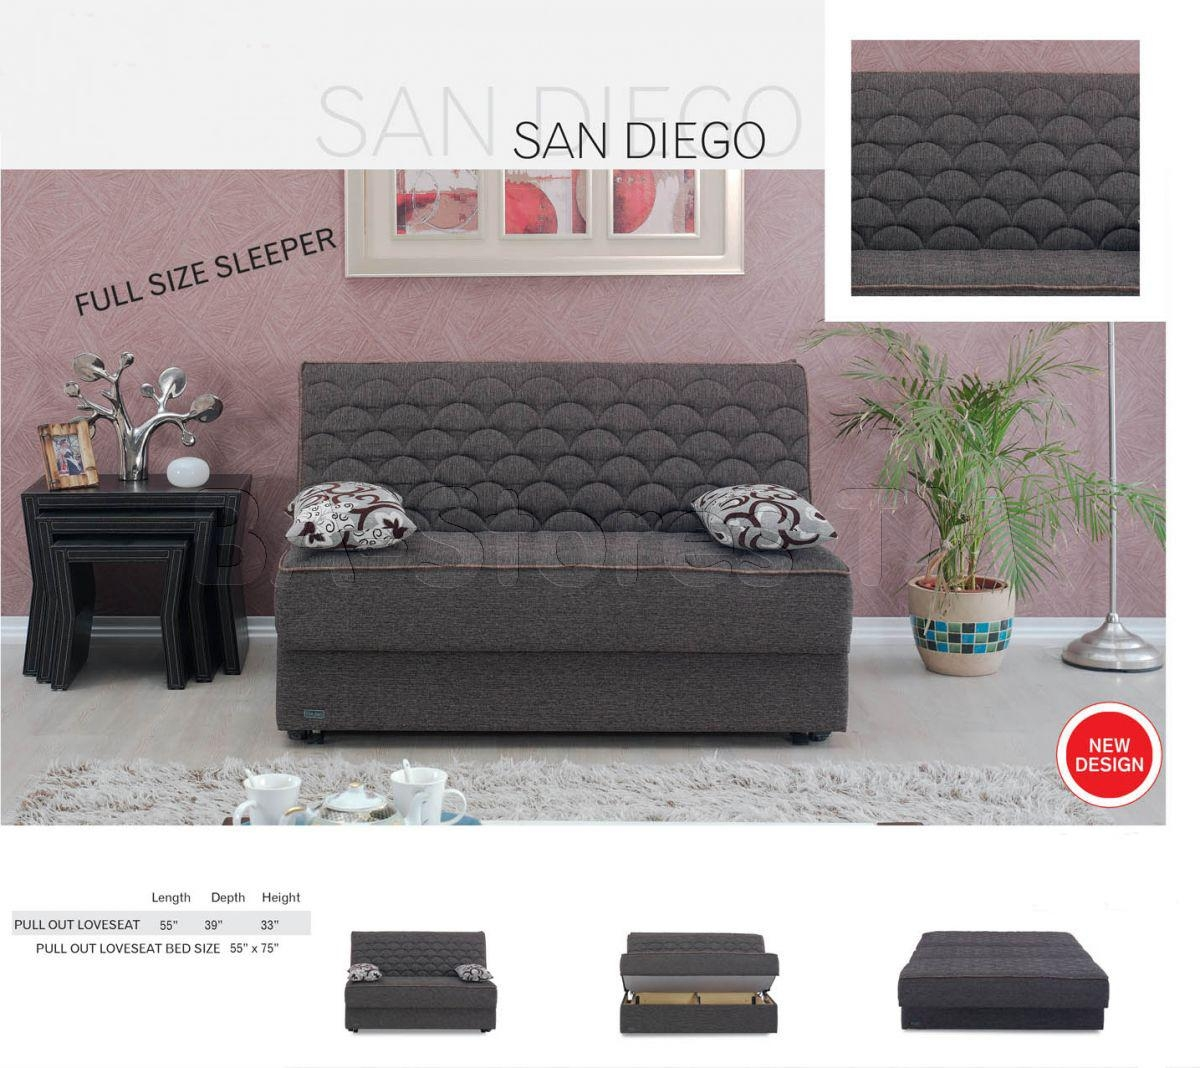 Meyan Furniture San Diego Armless Sleeper Sofa Bed | Sofa Beds San For San Diego Sleeper Sofas (Image 5 of 20)